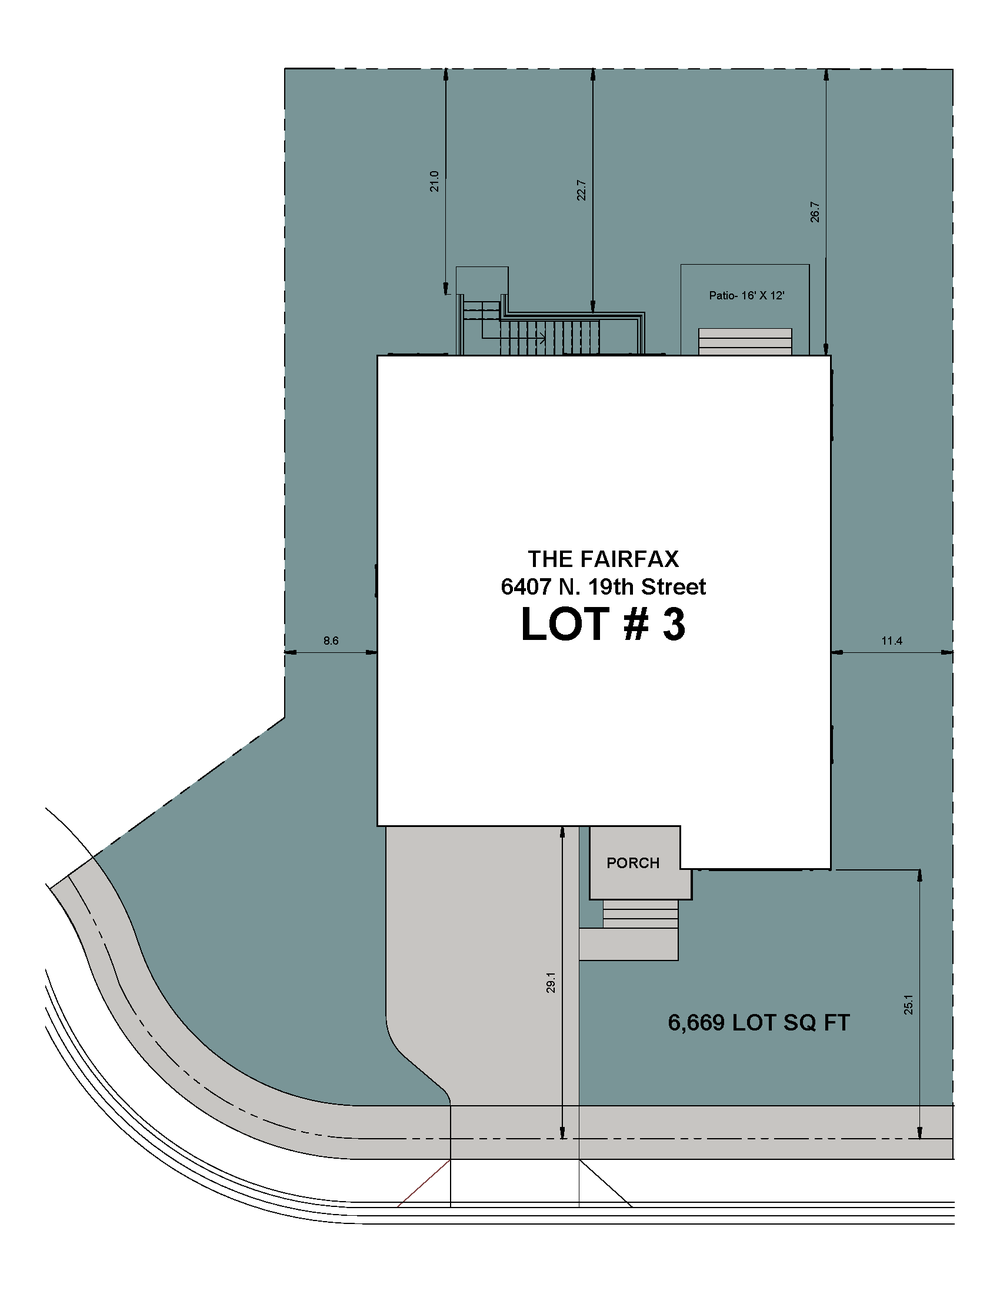 Lot 3 Site Plan-6407 N 19th Street-The Fairfax Model.png